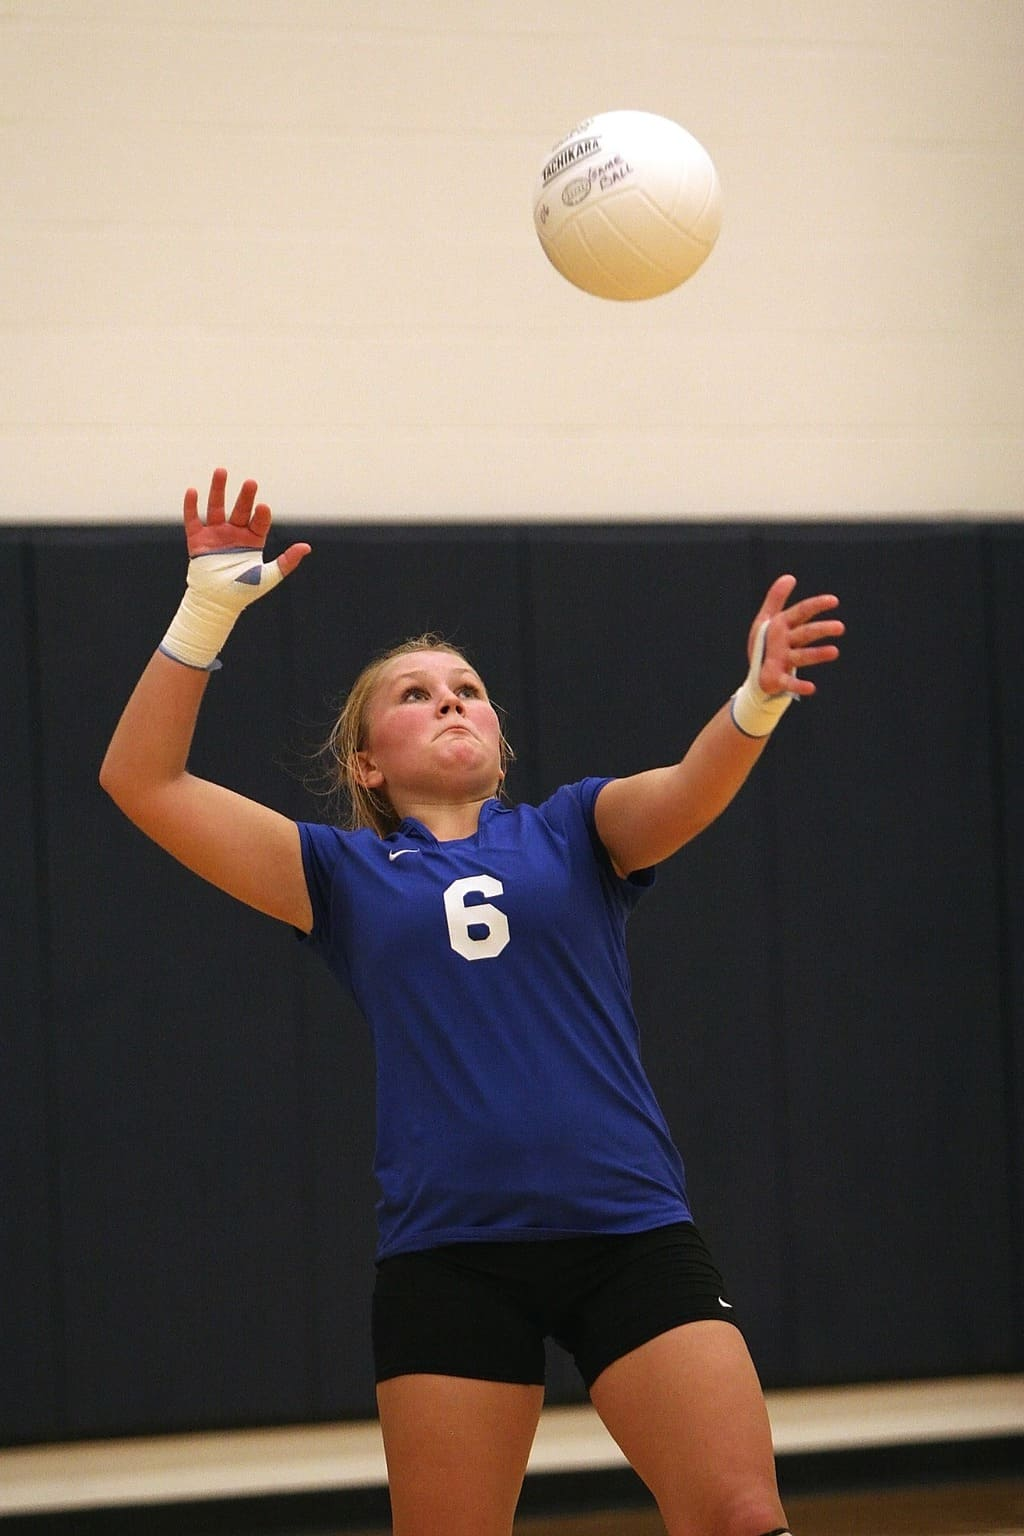 Volleyball player doing a serve